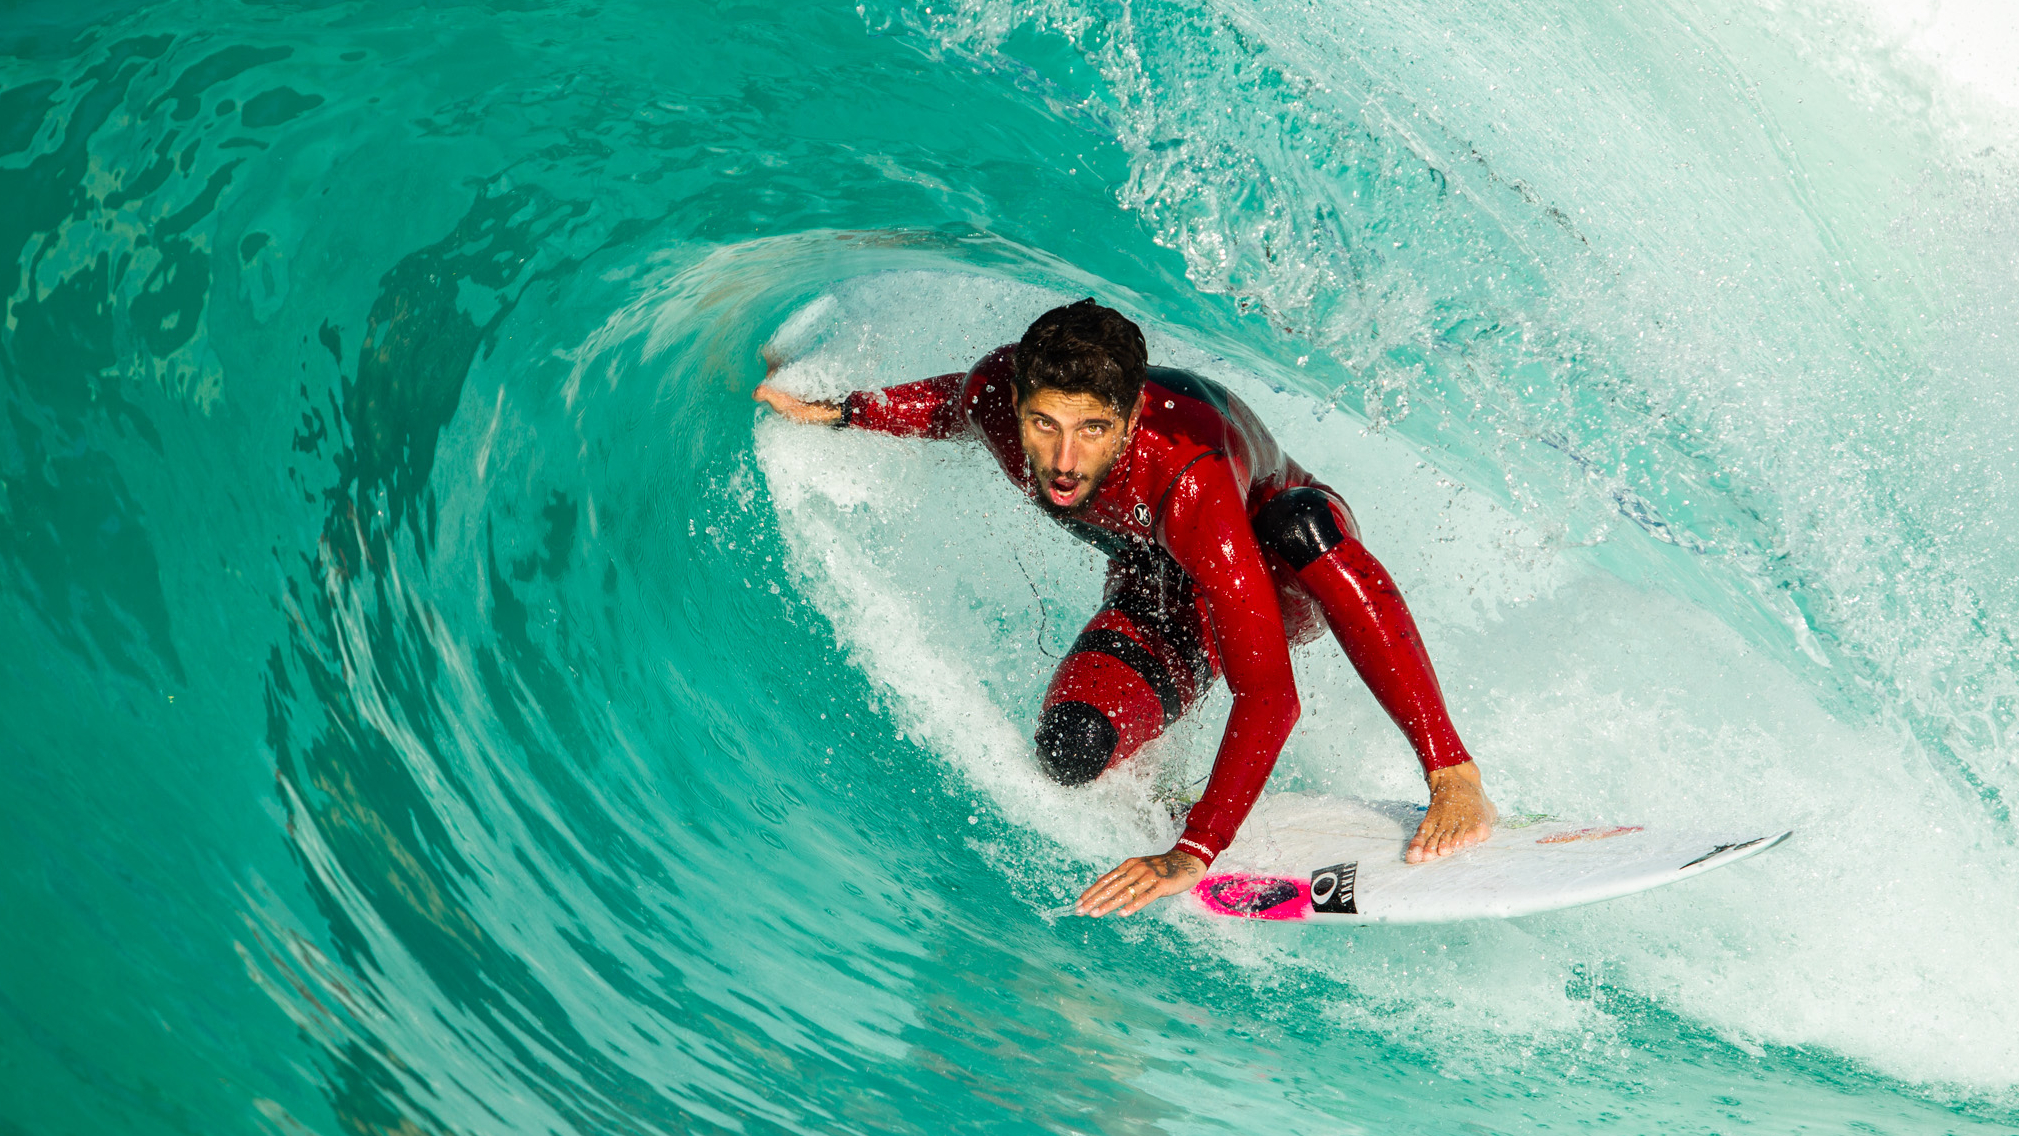 Filipe Toledo using Wavegarden's new slab wave pool setting